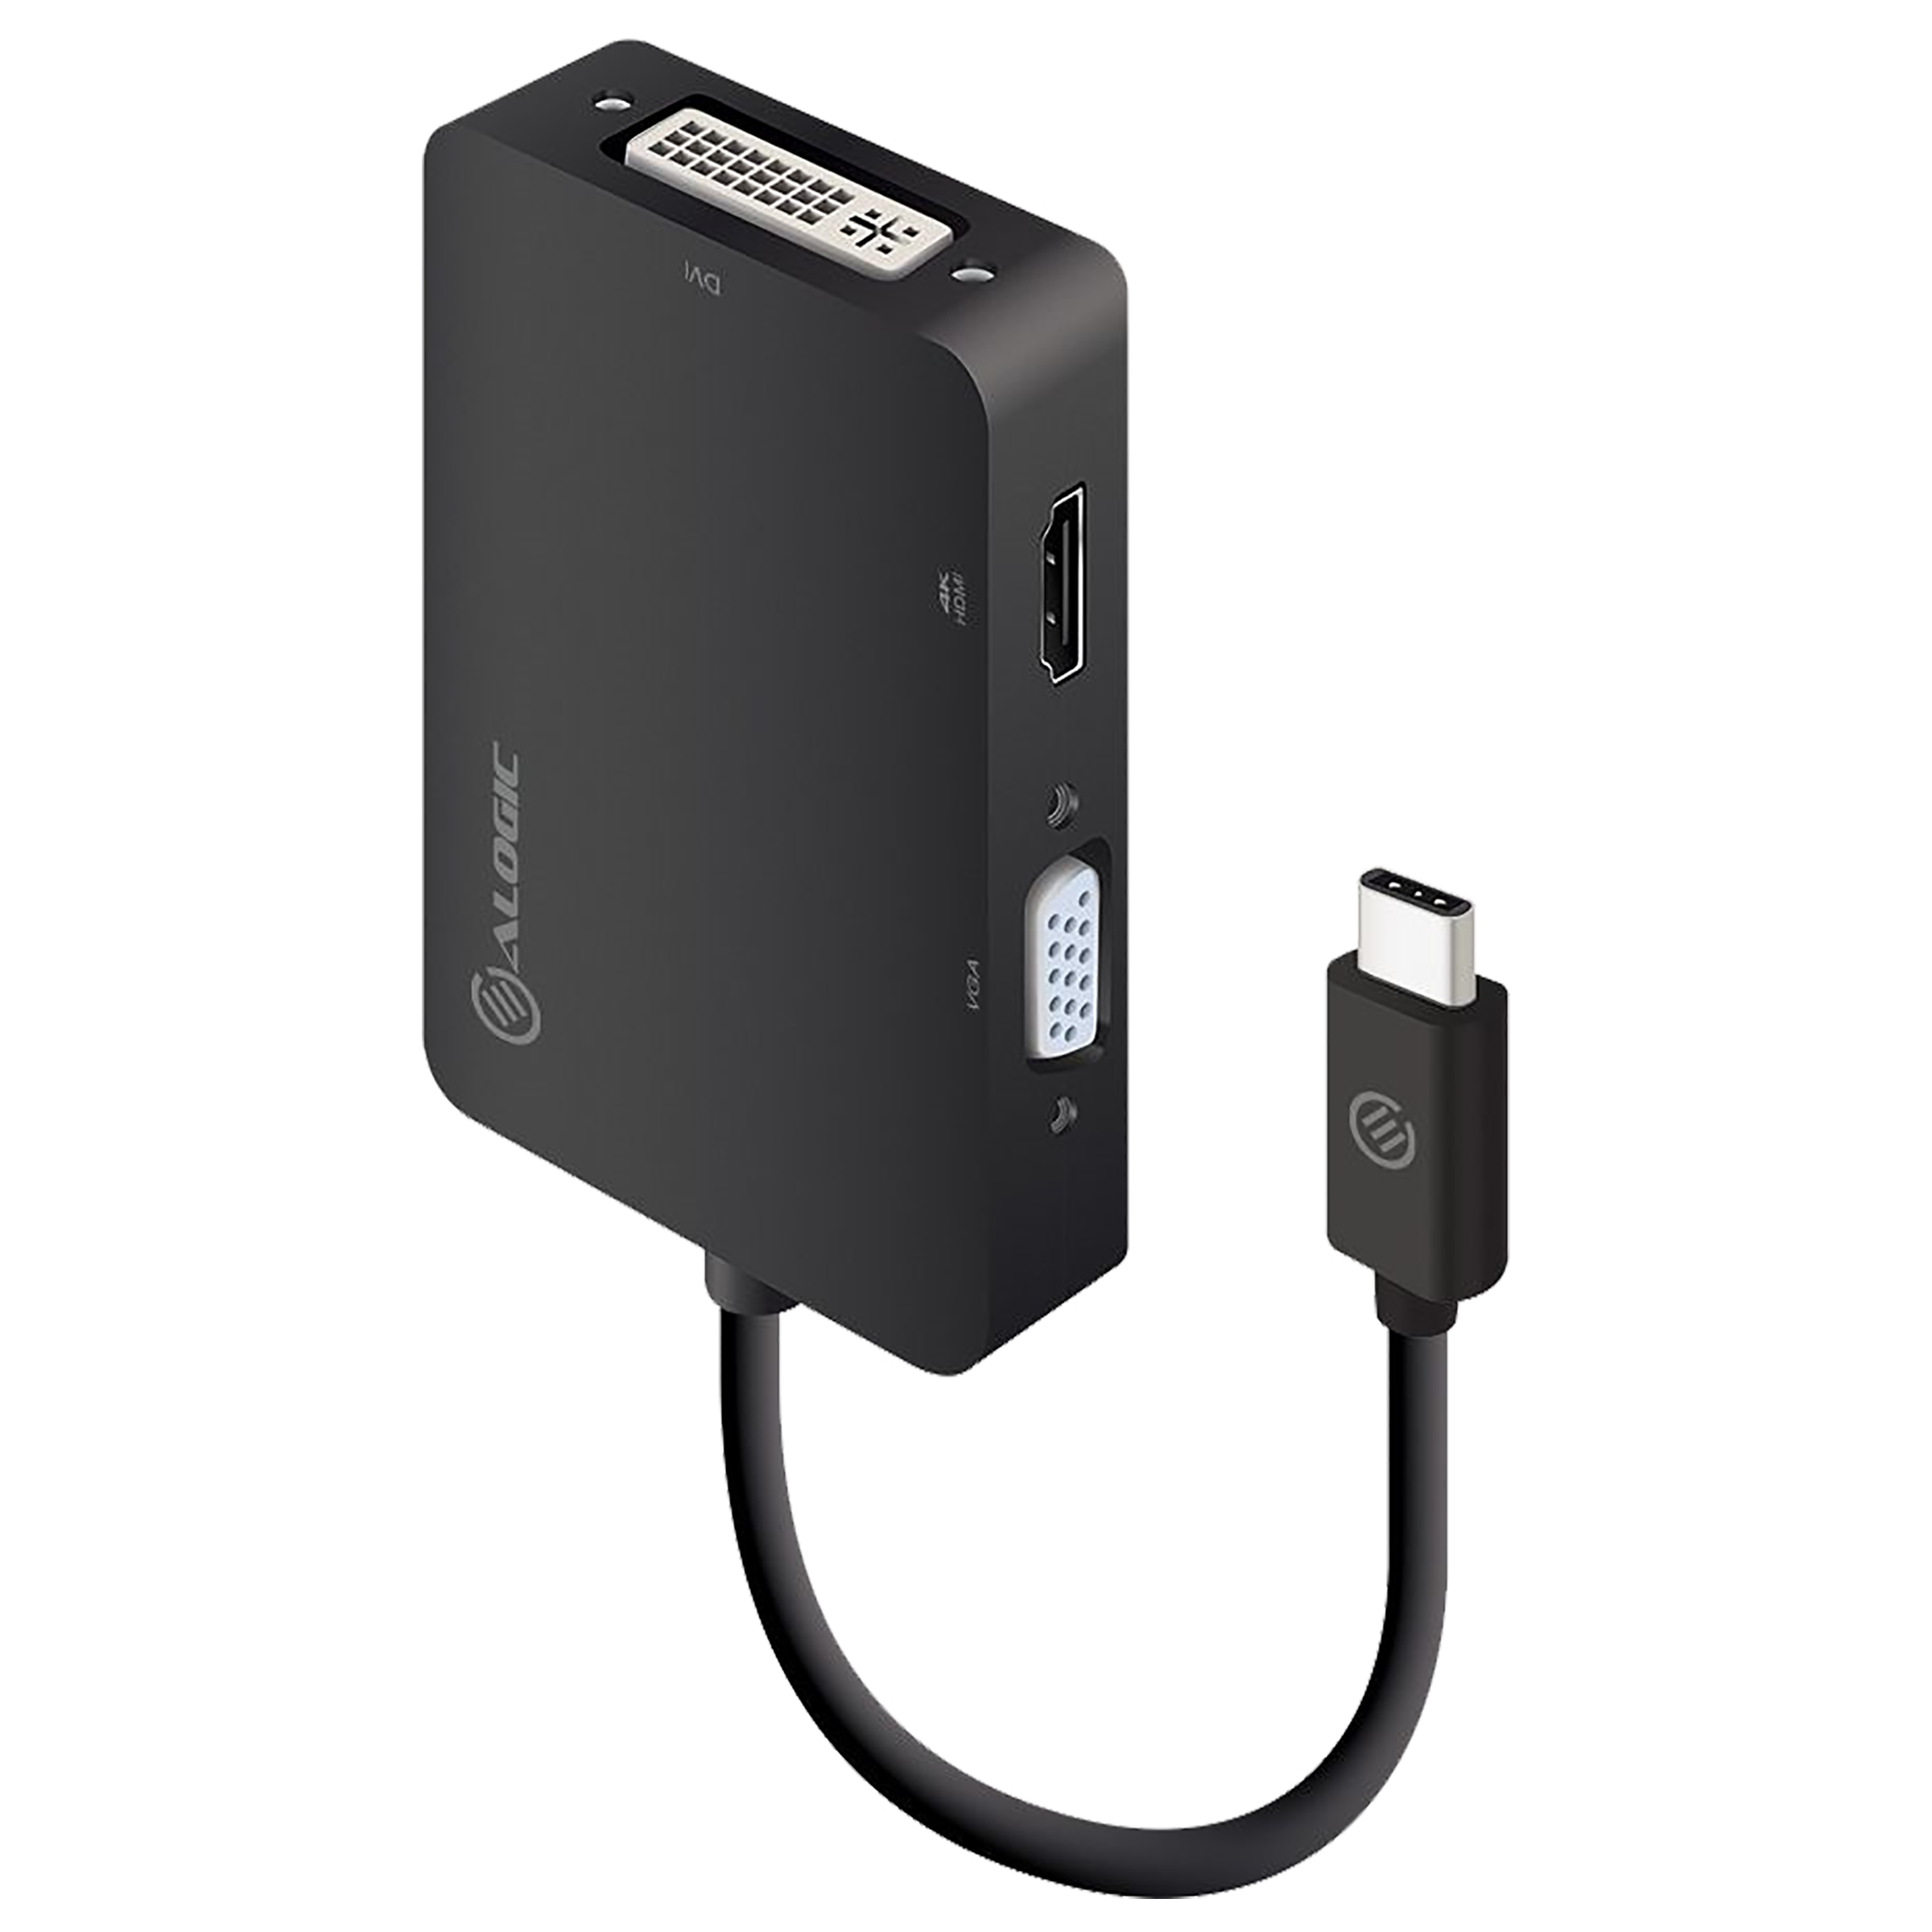 Alogic Premium Series USB 3.0 (Type-C) to HDMI (Type-A) / VGA / DVI Video Display Multiport Adapter (3-in-1 Video Outputs, UCVGDVHD-ADP, Black)_1